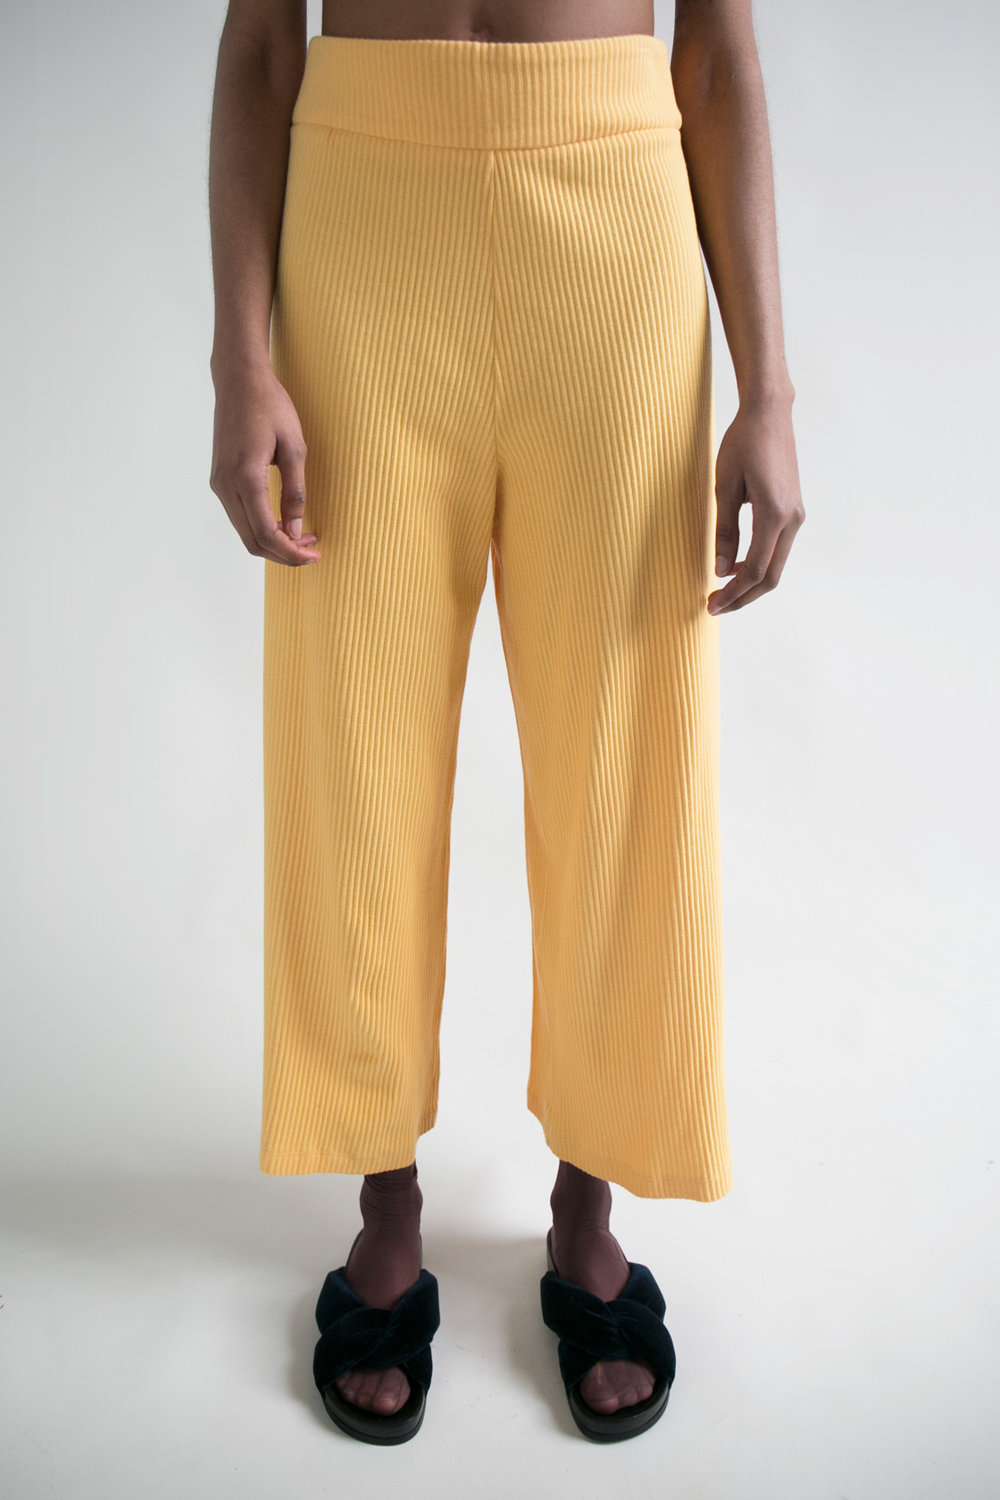 Basic Color Pant in YEllow  XS S M L  $228